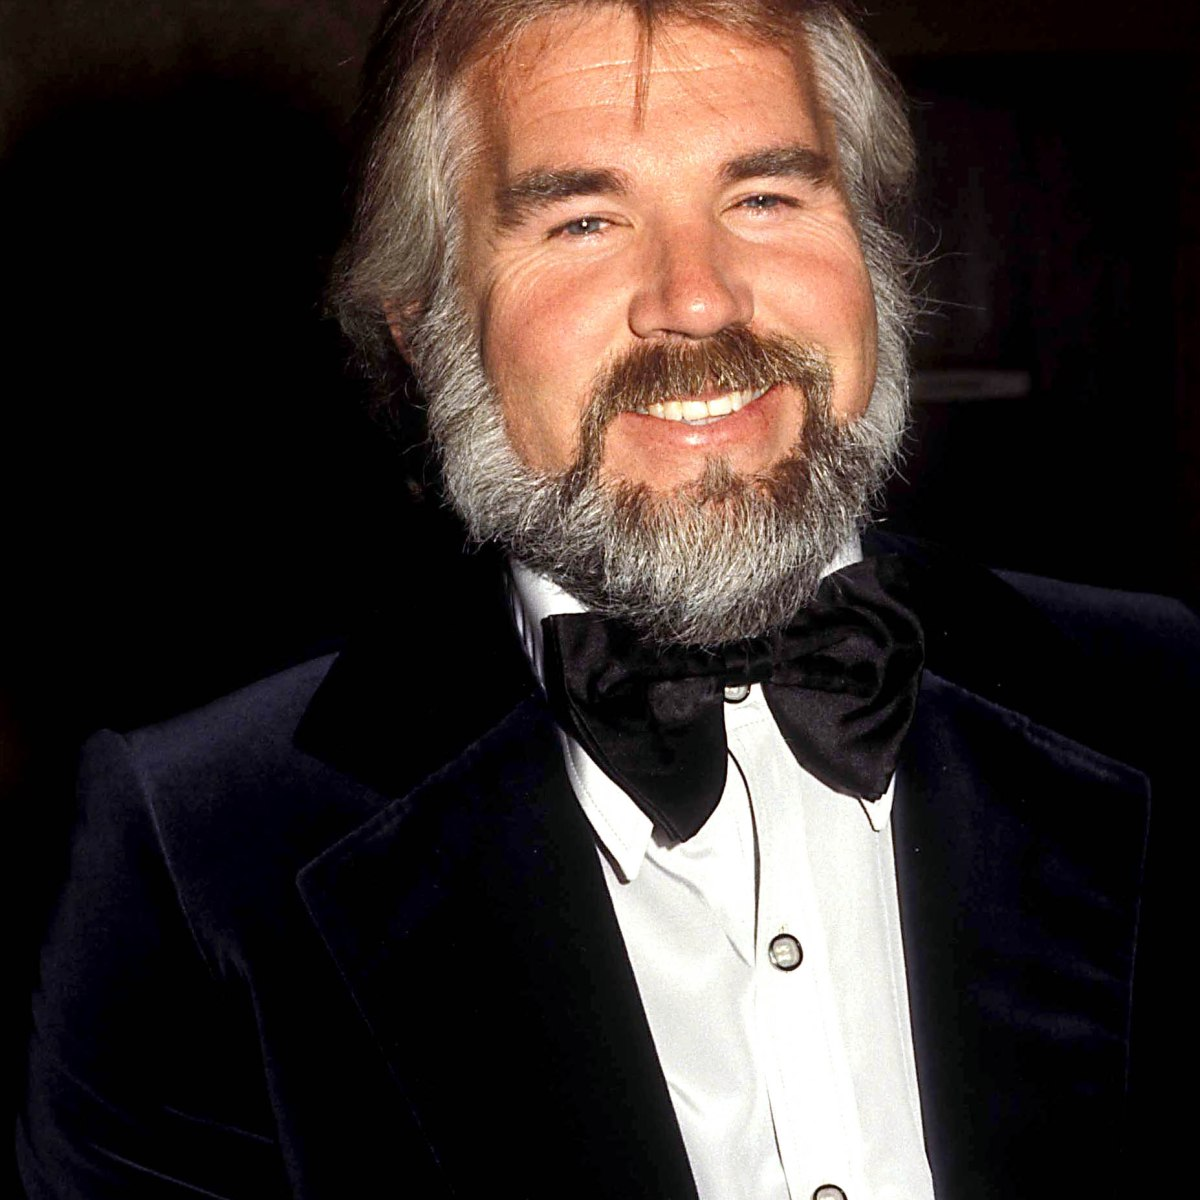 Kenny Rogers Kids Late Country Star Had 5 Children With 4 Wives